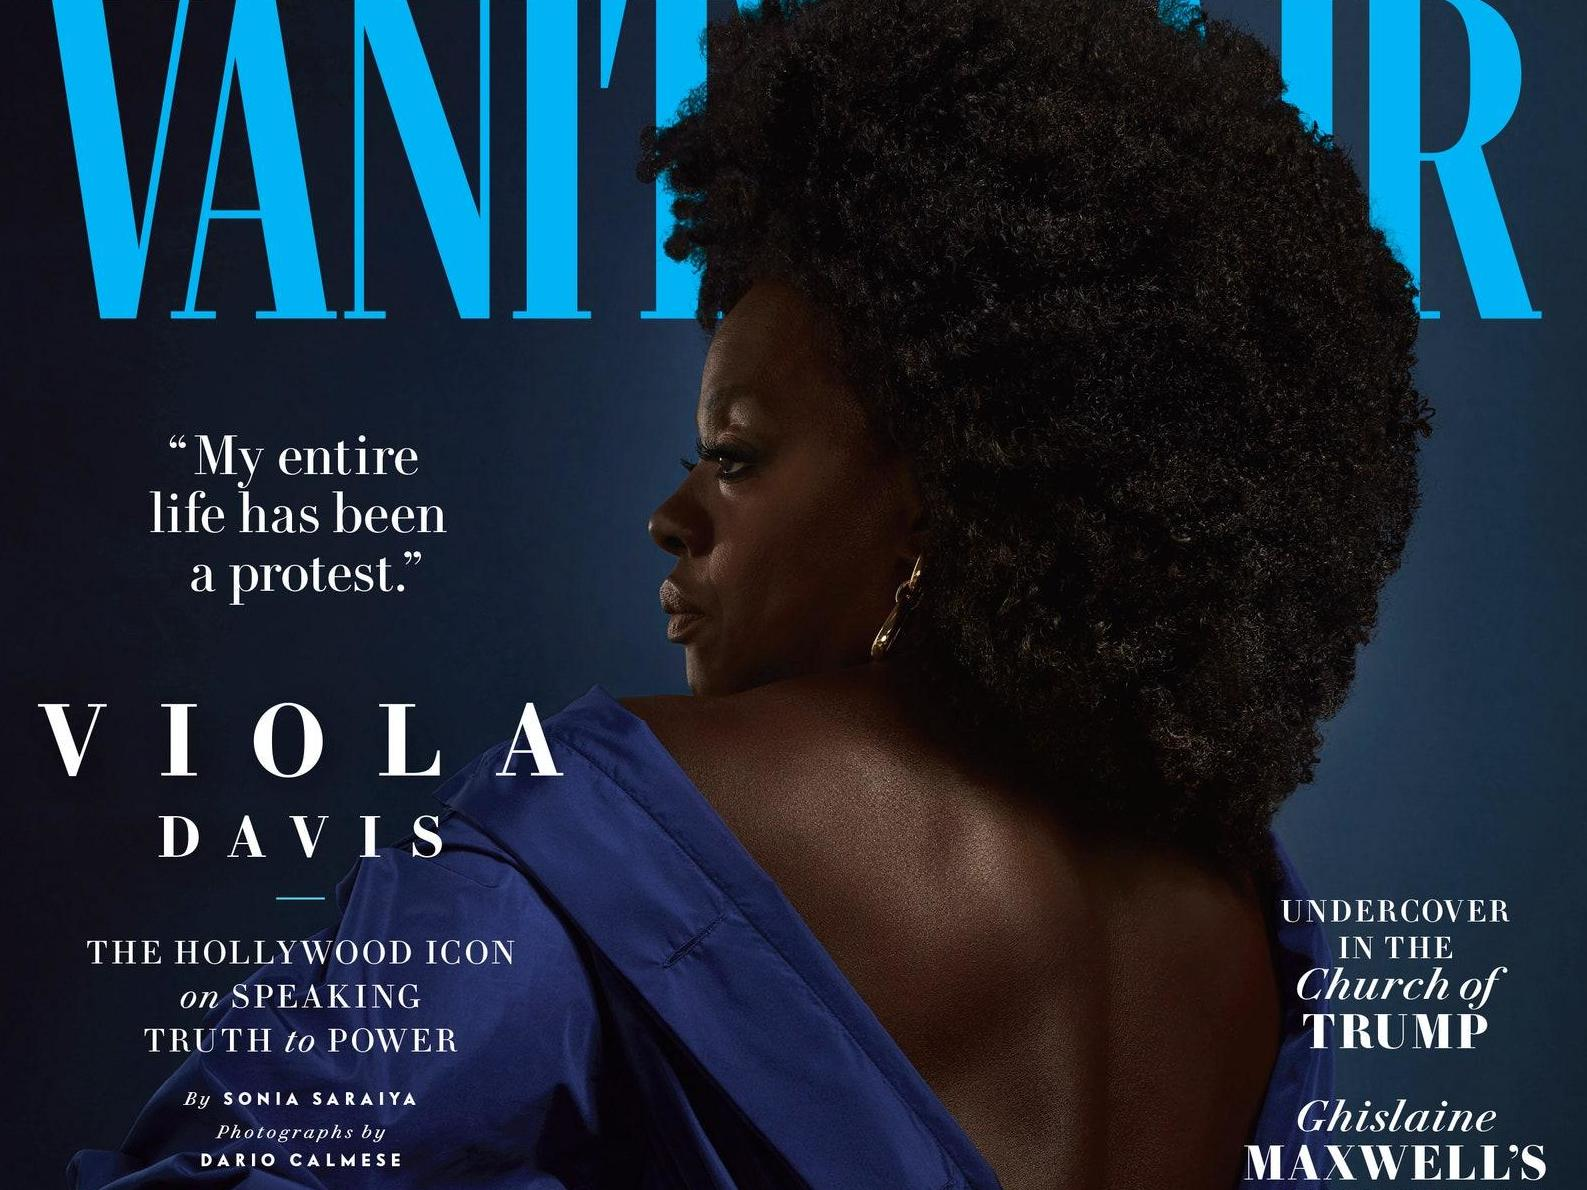 'For me, this cover is my protest': Vanity Fair publishes first ever cover shot by black photographer thumbnail